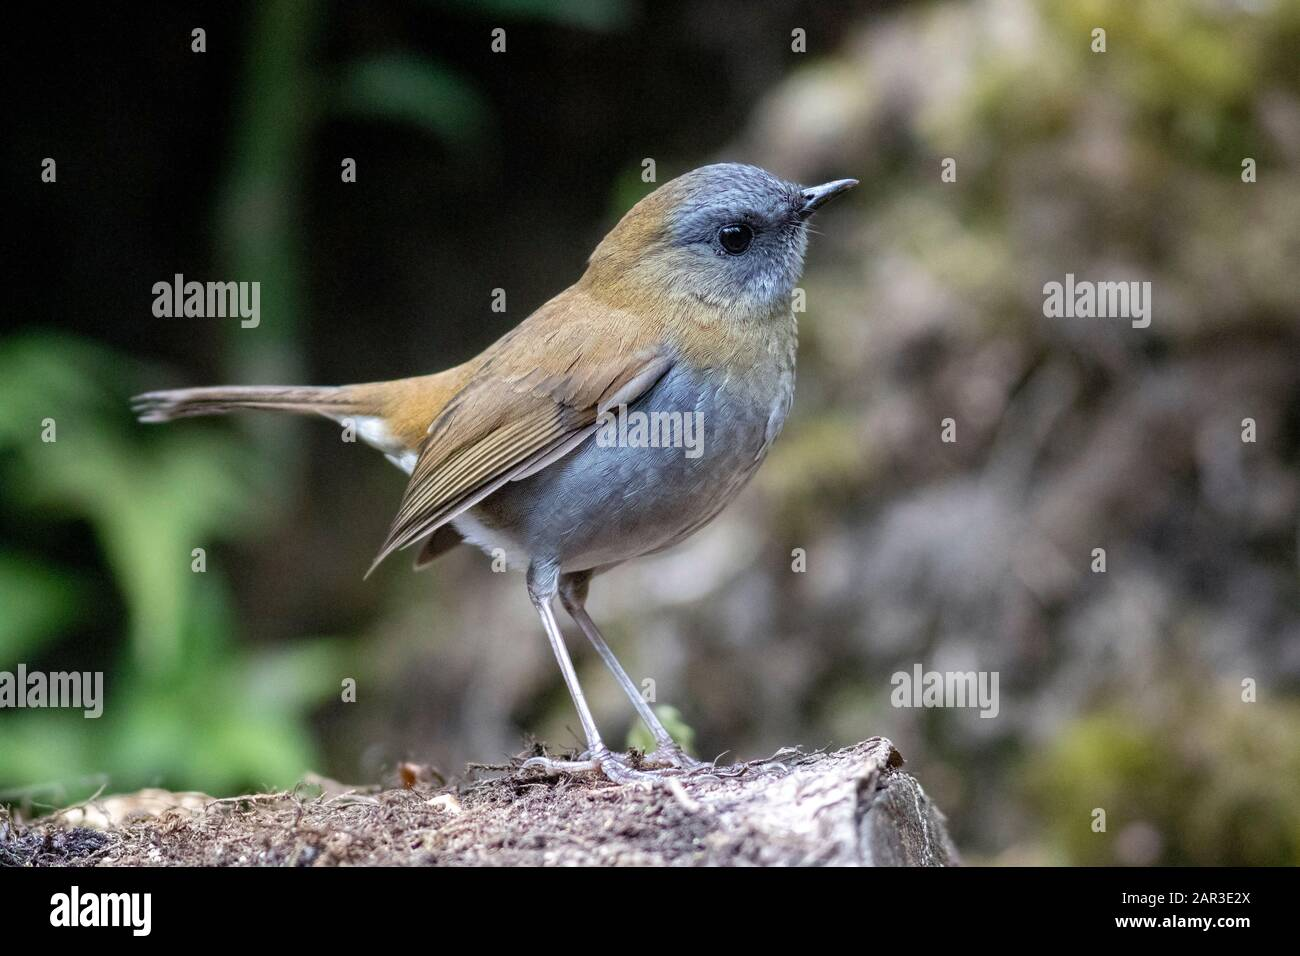 Black-billed nightingale-thrush (Catharus gracilirostris) - Paraiso Quetzal Lodge, San Gerardo de Dota, San Jose Province, Costa Rica Stock Photo